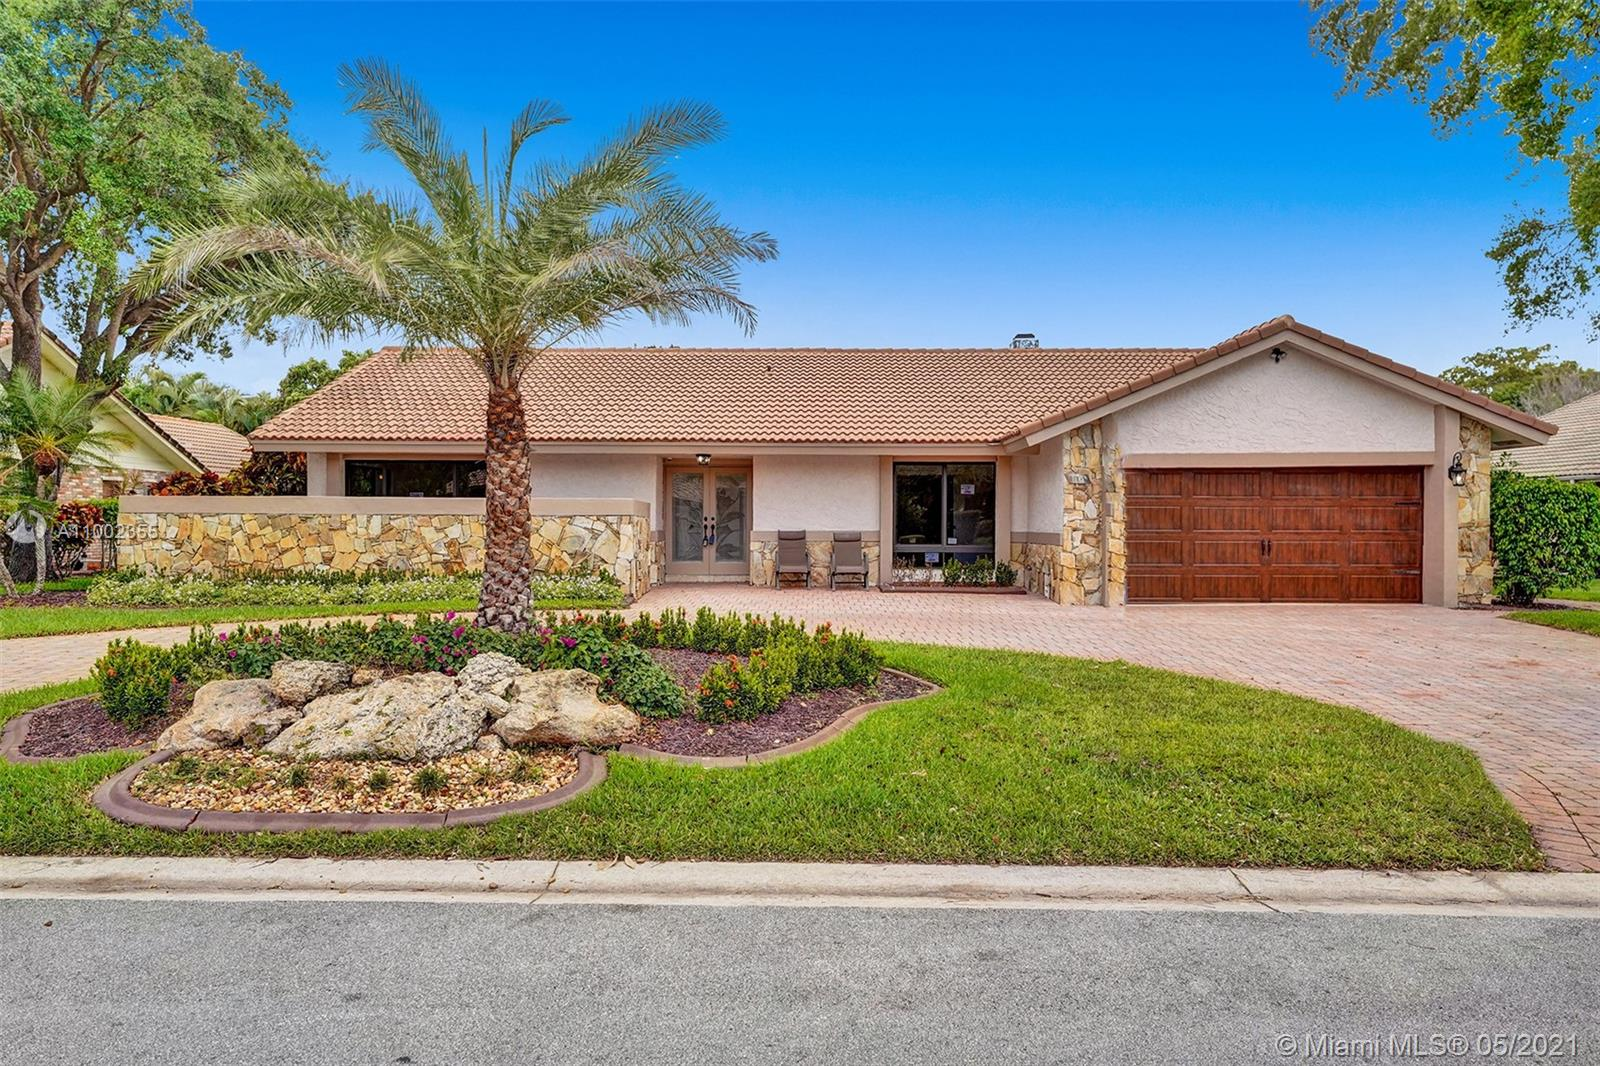 This is a grand opportunity for someone who likes things their way. This seller is willing to accommodate this buyer with their choices from his selections of kitchen and bathrooms. Currently, the home has beautiful tiled flooring, high impact window and doors, gorgeous stained tinted glass front door, French doors leading to the pool, barn door in master bedroom, master bathroom has an atrium and window, double vanity baths, beautiful pool area with brick pavers with full out door kitchen with full brand new barbeque area with pass through window with a dome screen.